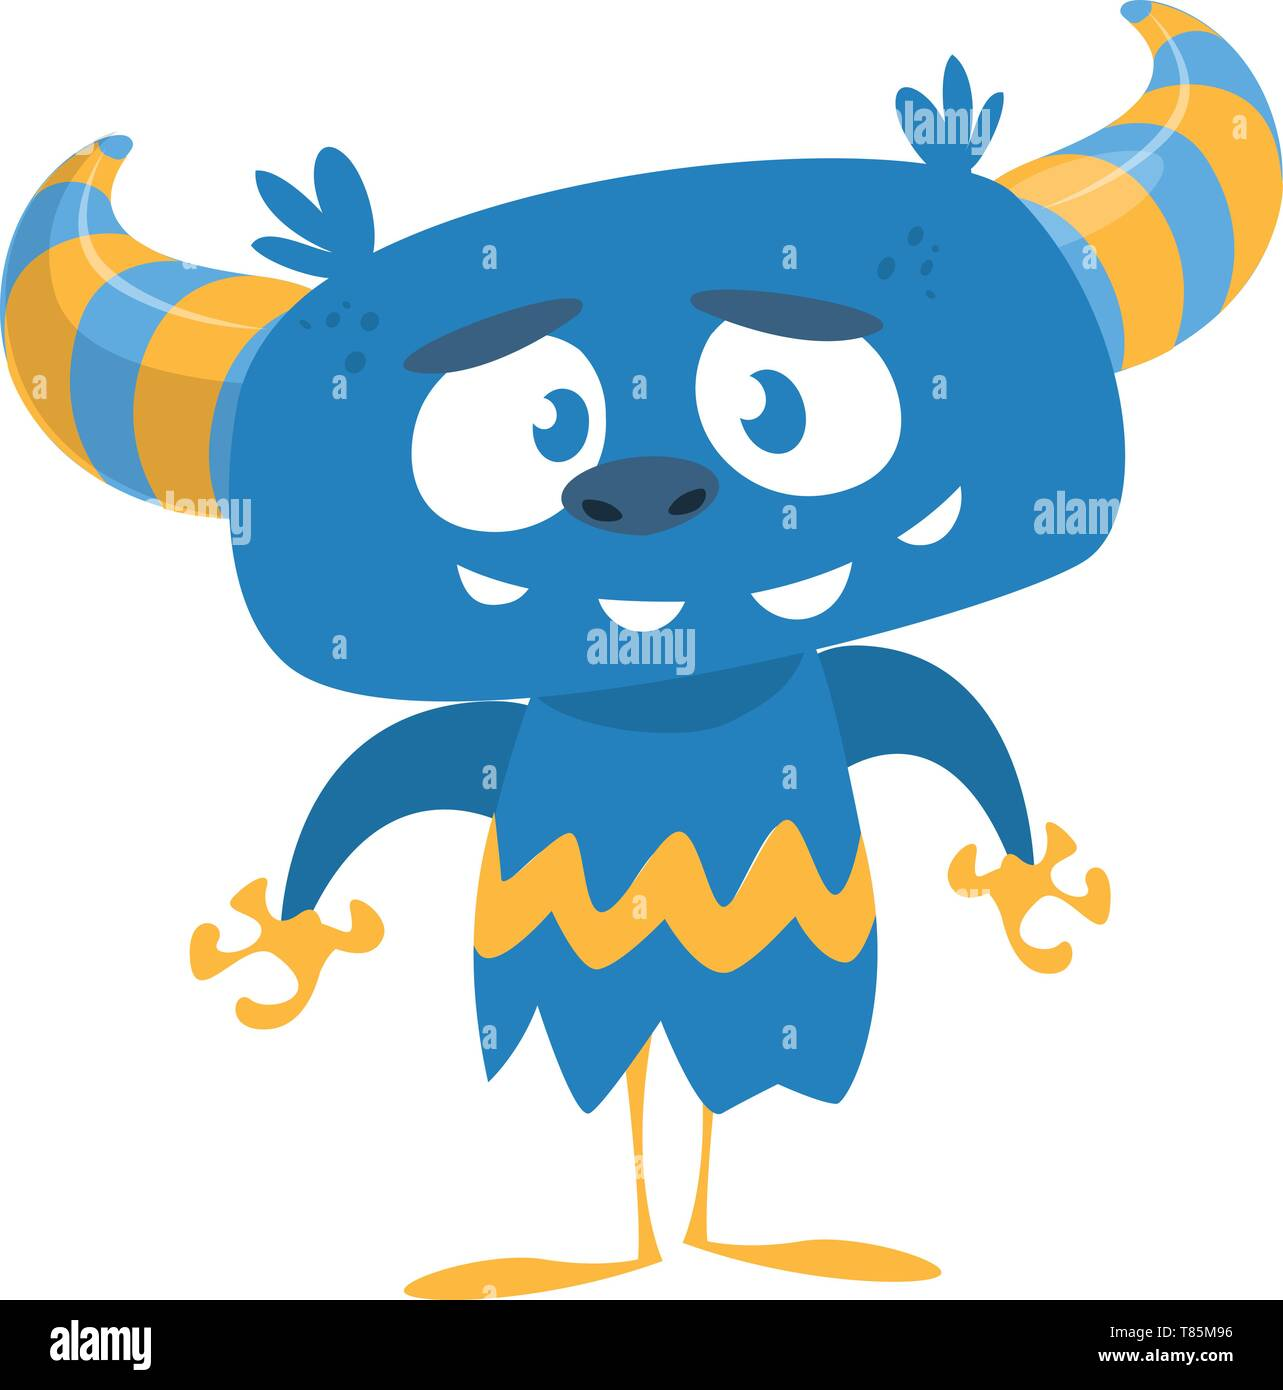 Cartoon blue monster. Vector illustration isolated on white - Stock Image